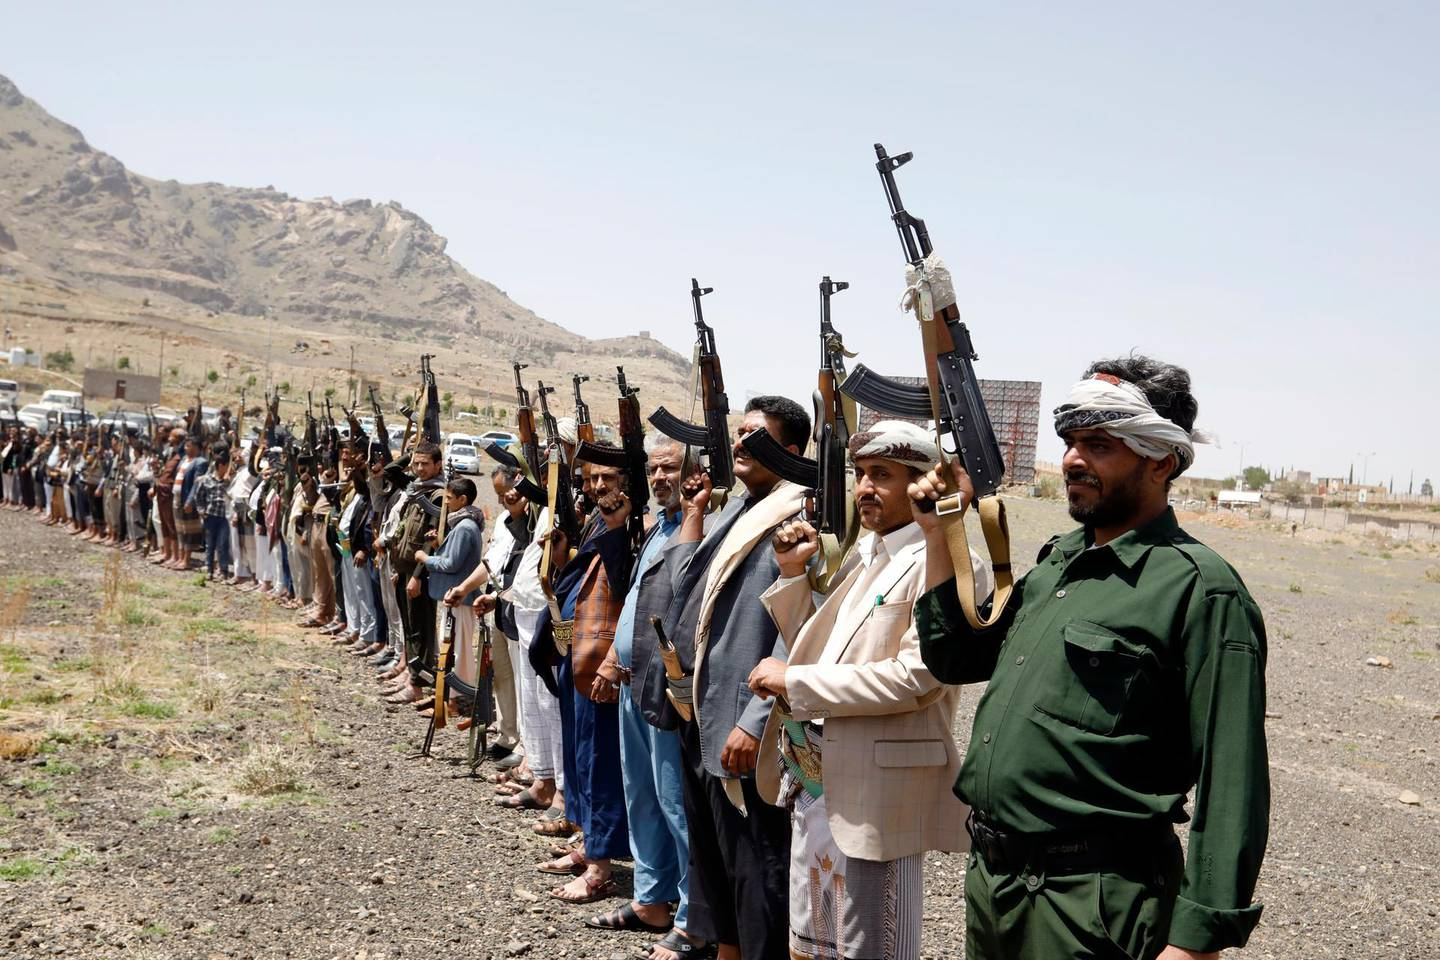 epa09215483 Armed Houthi supporters take part in a rally protesting against Israeli strikes on the Gaza Strip, in Sana'a, Yemen, 20 May 2021. In response to days of violent confrontations between Israeli security forces and Palestinians in Jerusalem, various Palestinian militant factions in Gaza launched rocket attacks since 10 May that killed at least ten Israelis to date. Gaza Strip's health ministry said that at least 232 Palestinians, including 65 children, were killed in the recent retaliatory Israeli airstrikes.  EPA/YAHYA ARHAB